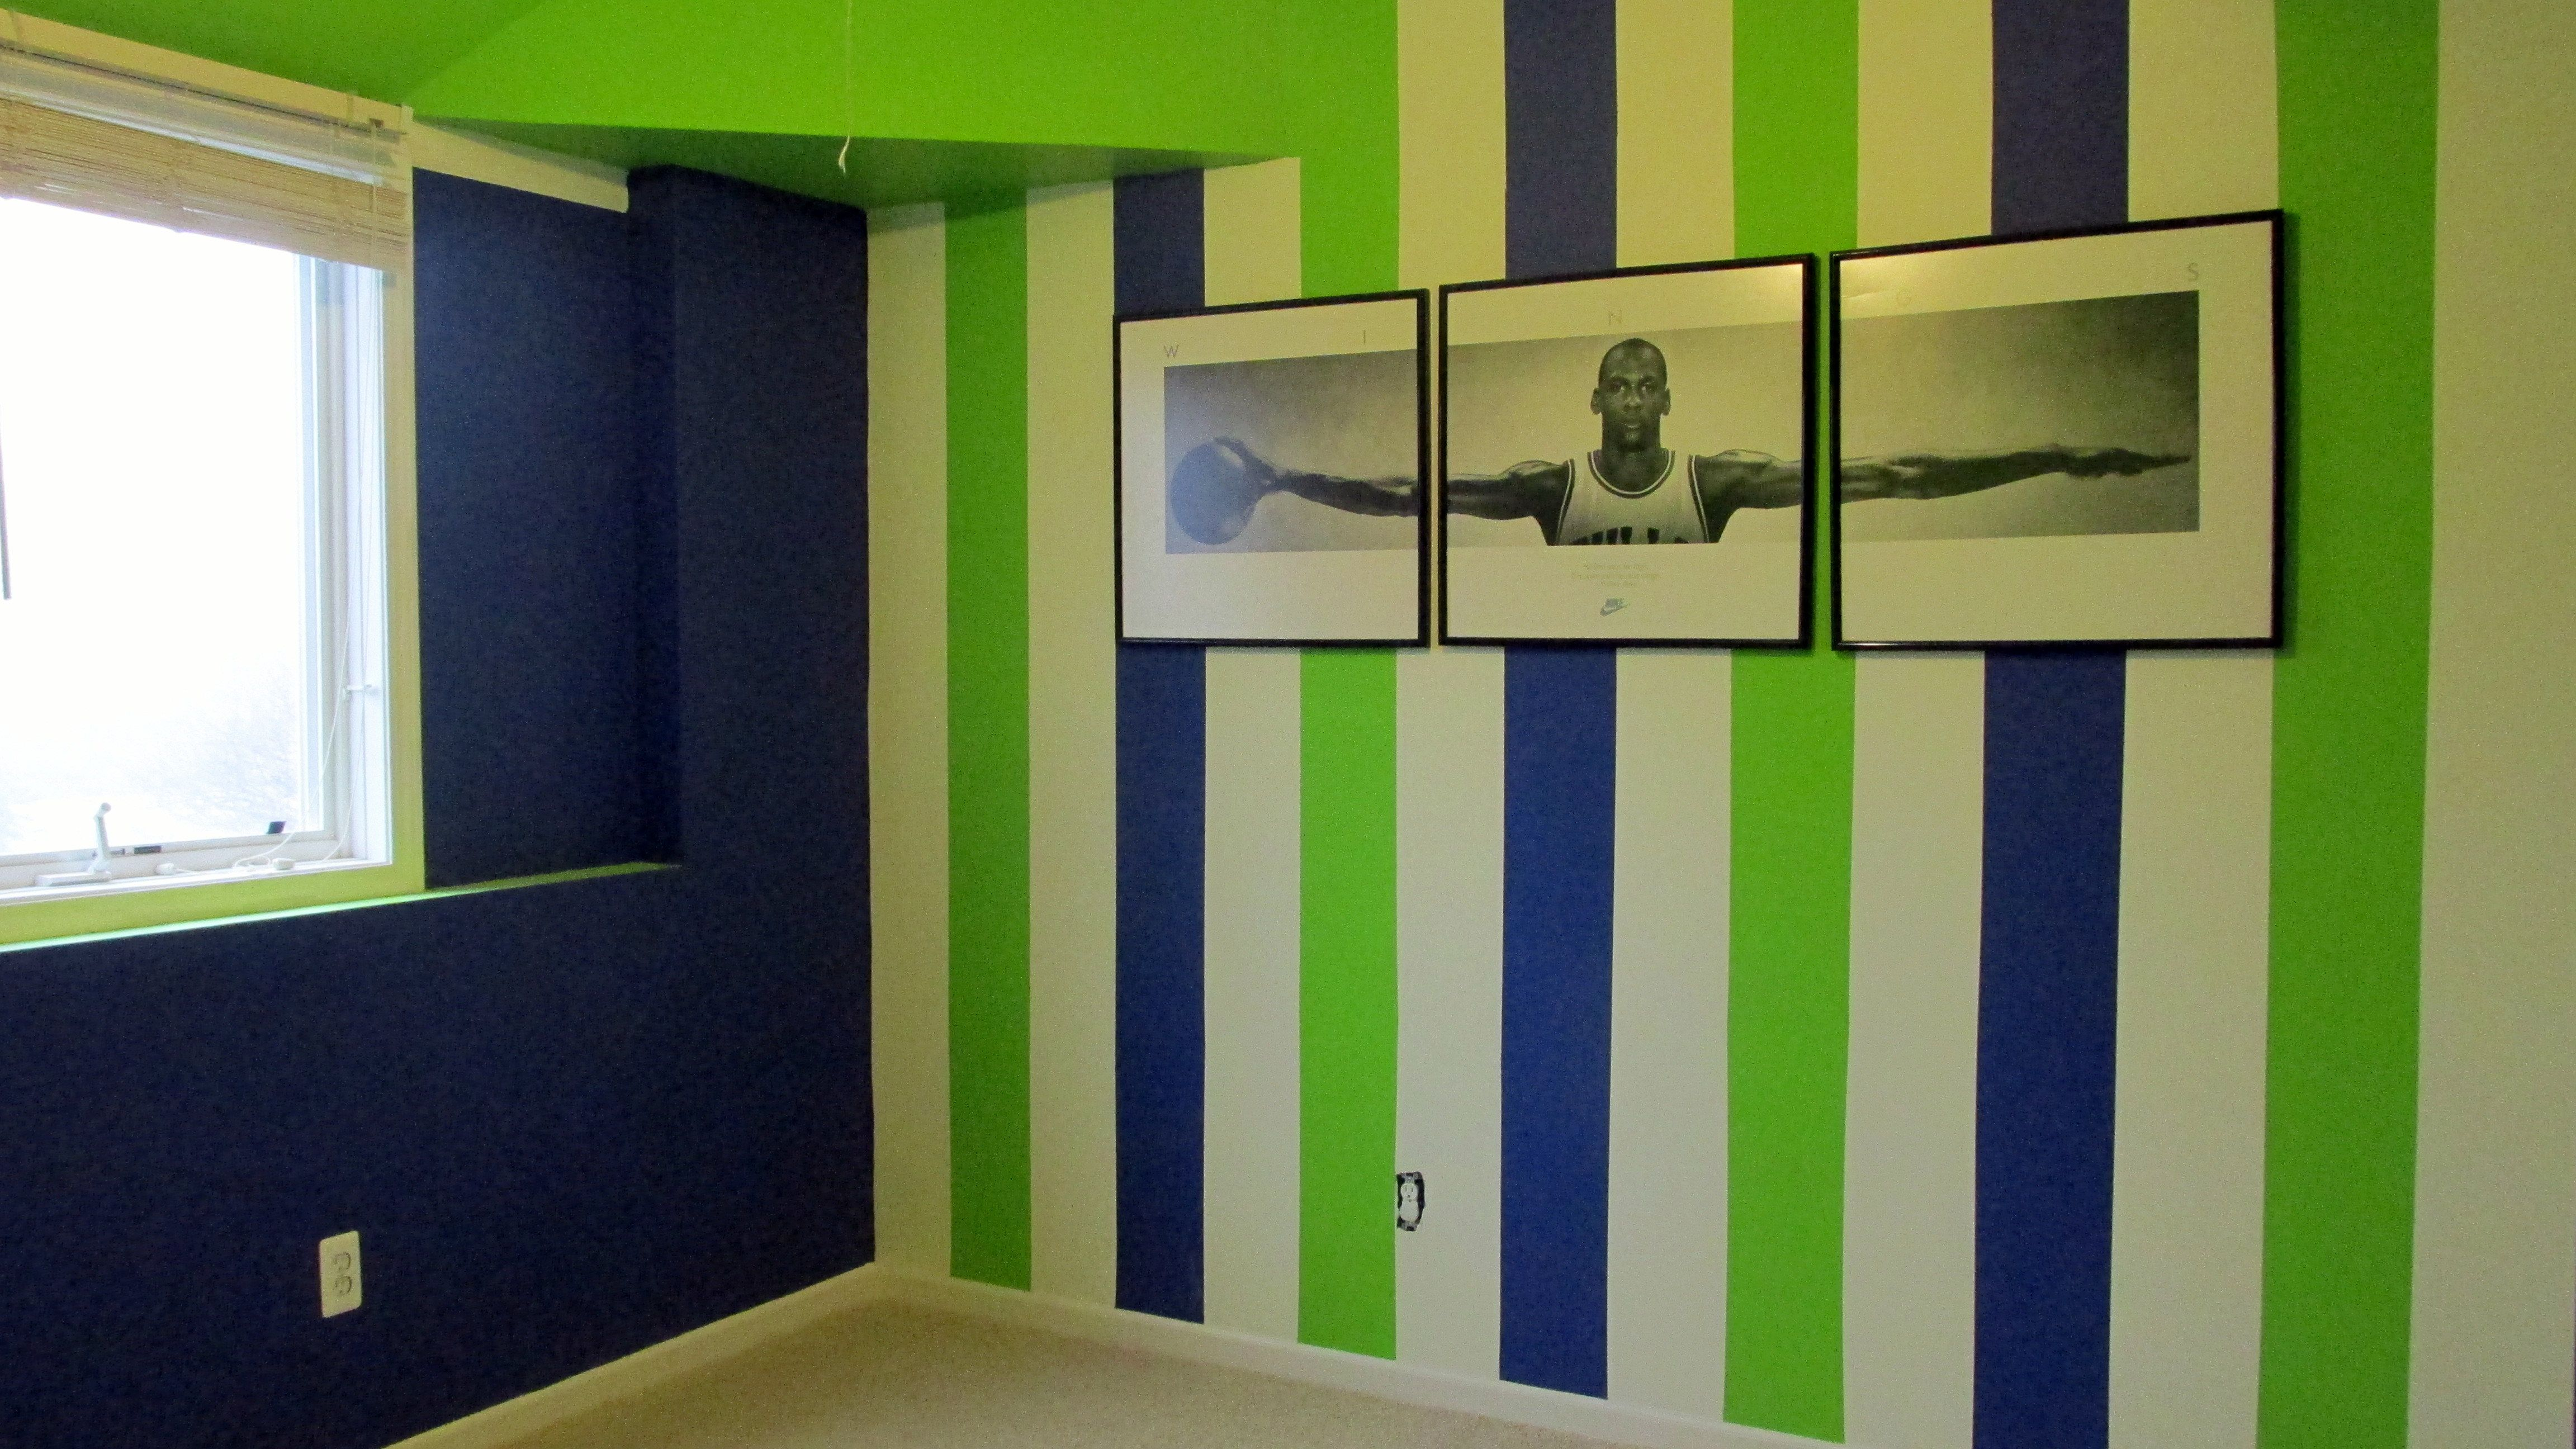 Fun Way To Paint A S Room One Wall Is Striped Navy Blue White And Neon Green The Other Three Walls Are Plain